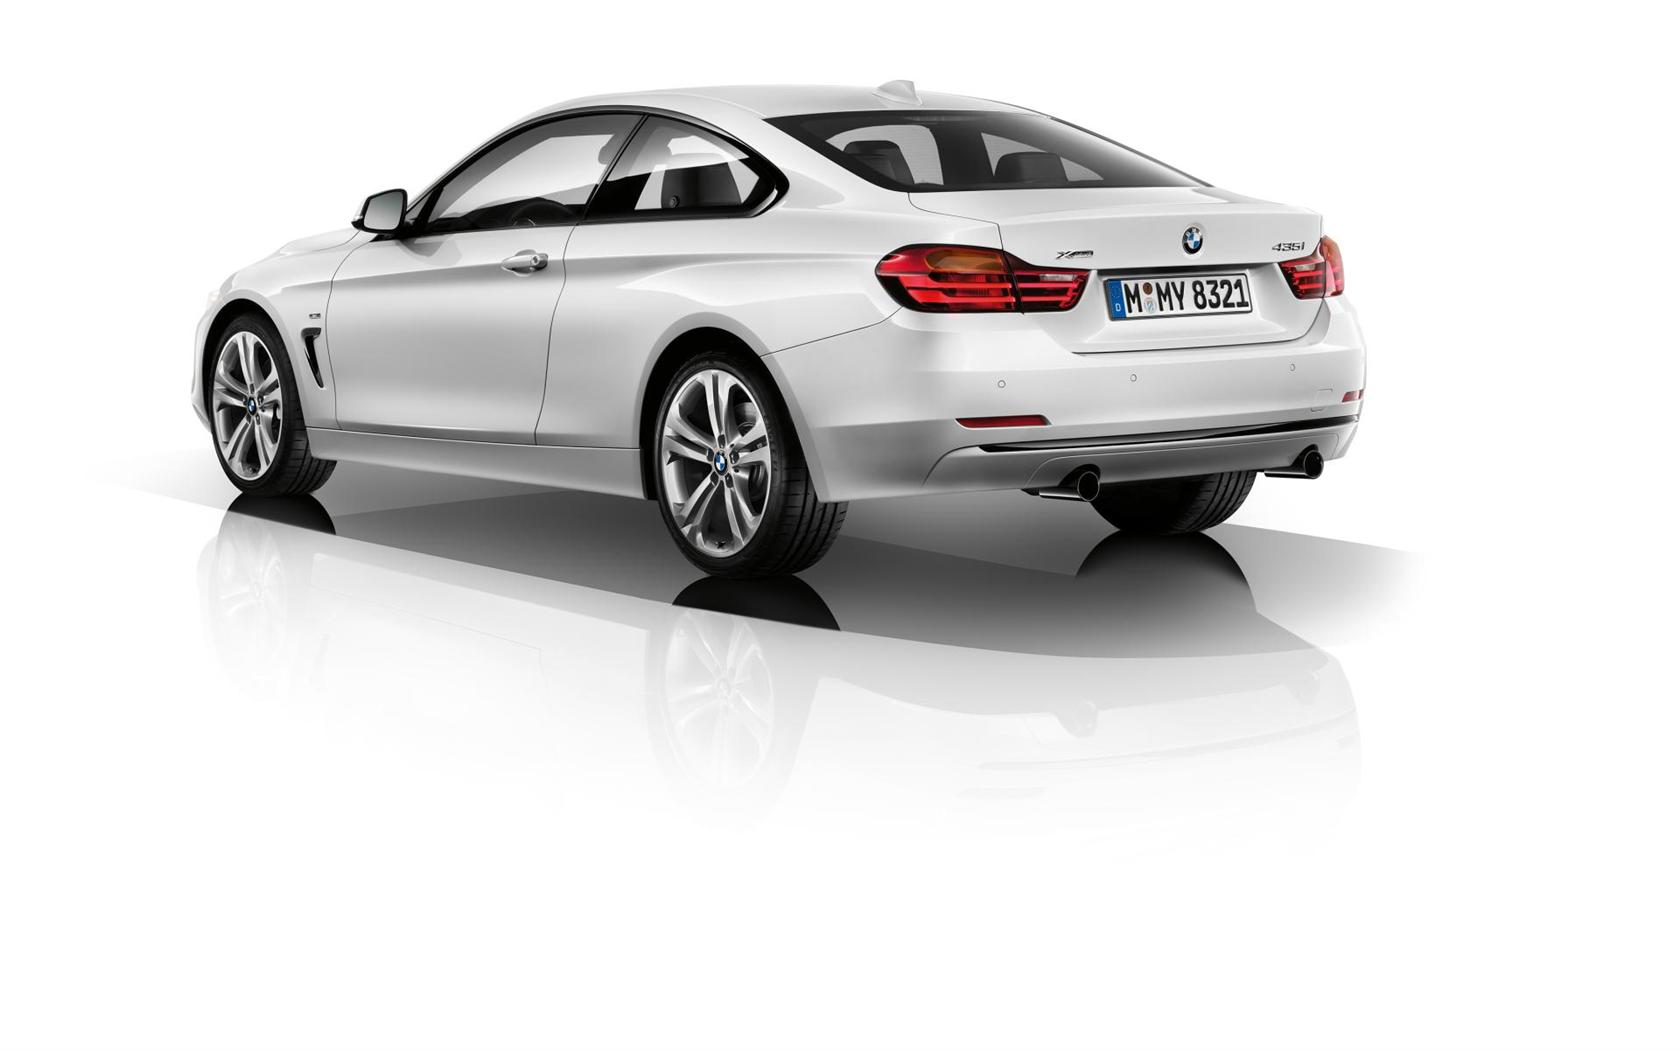 Bmw 7 series rear angle  № 3044803  скачать